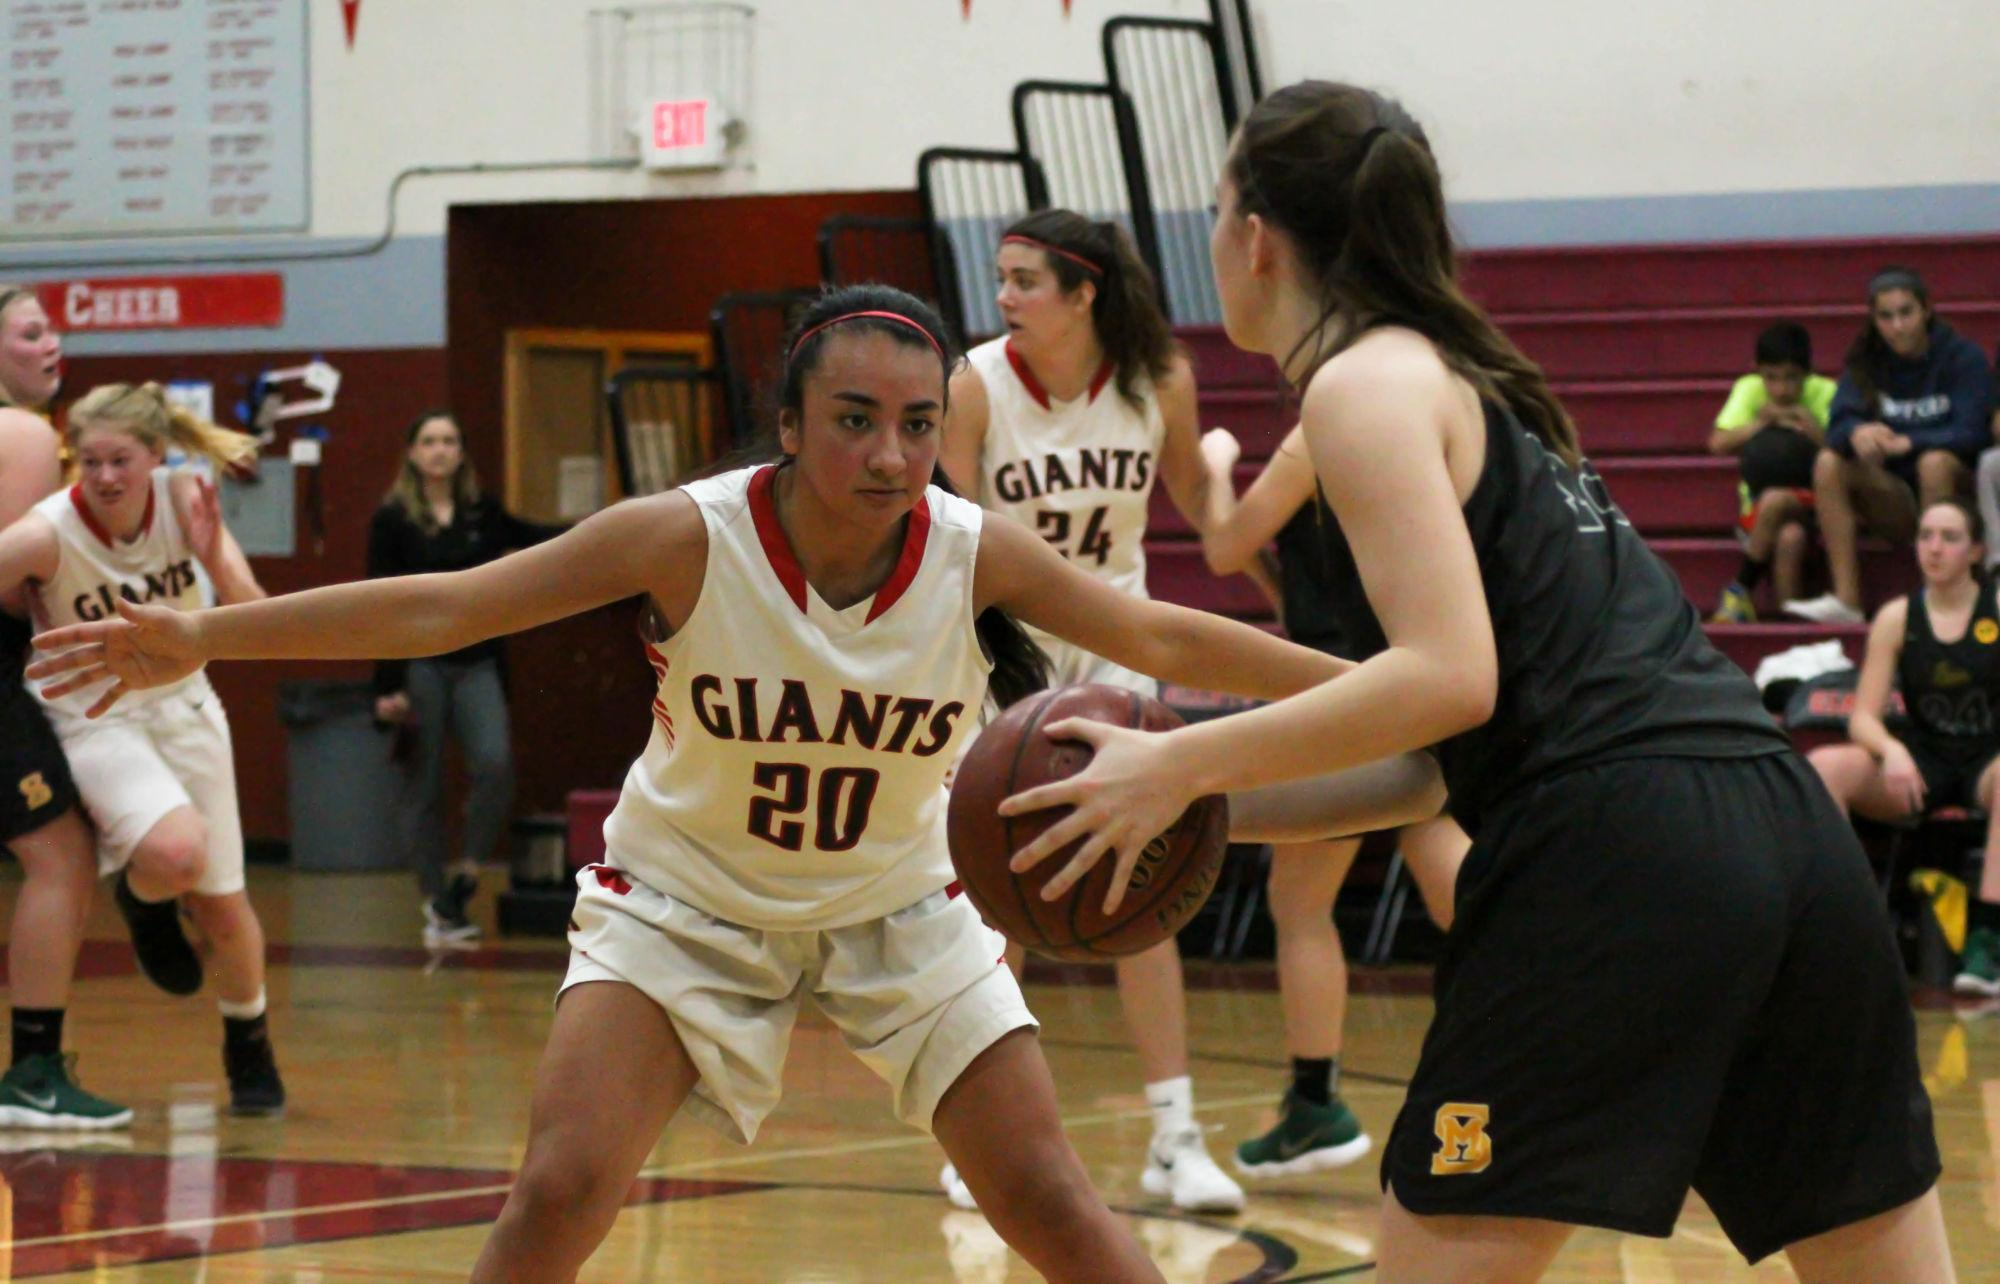 Girls' varsity basketball outlast San Marin in Senior Night victory